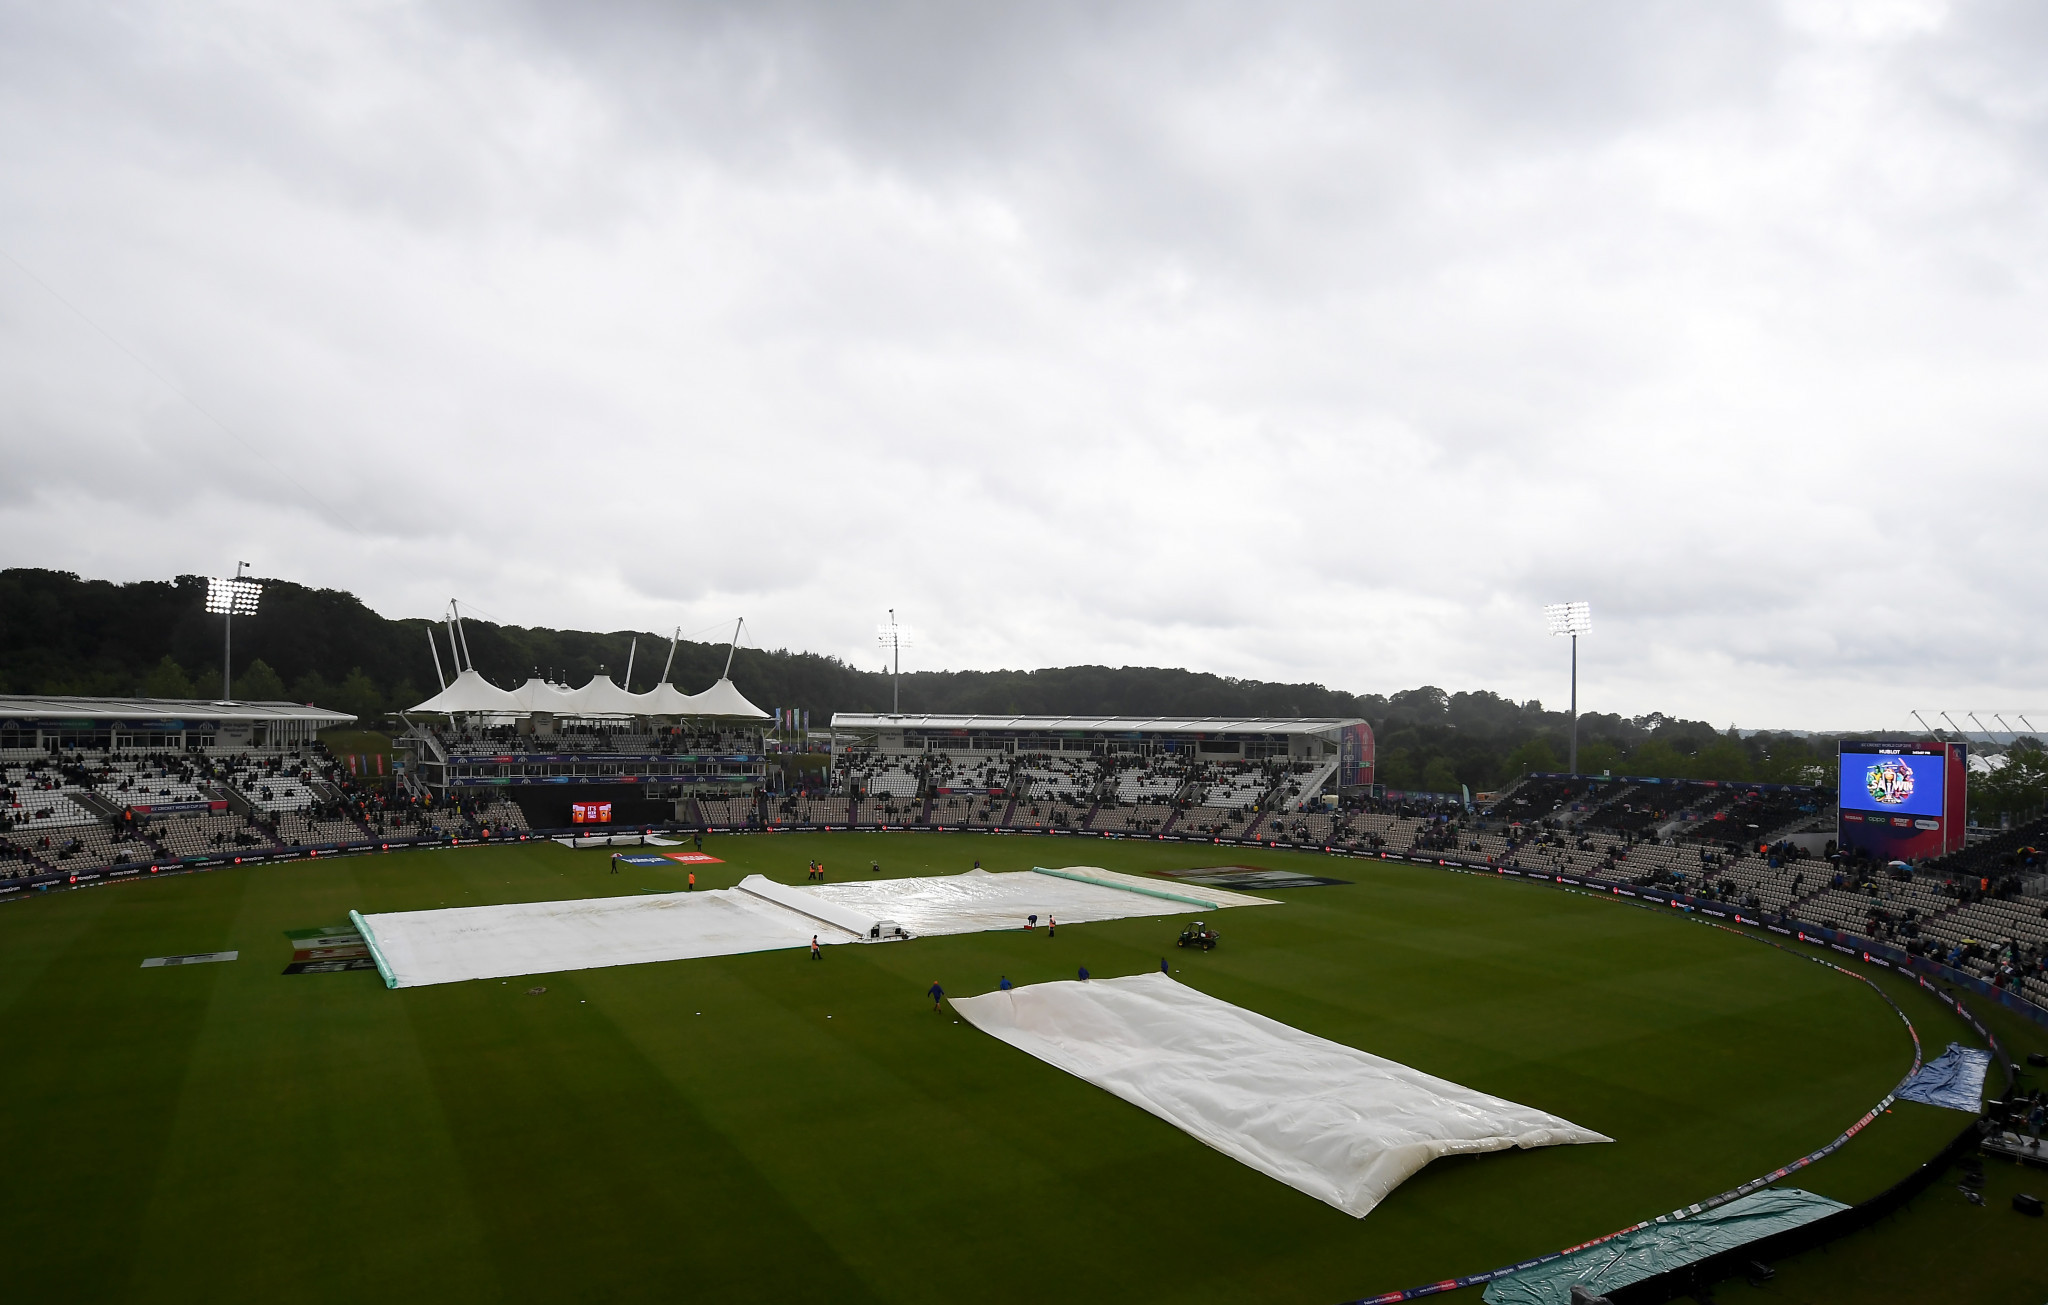 South Africa's fading chances of reaching the semi-finals of the Cricket World Cup were dealt a further blow today after their match with West Indies was abandoned ©Getty Images